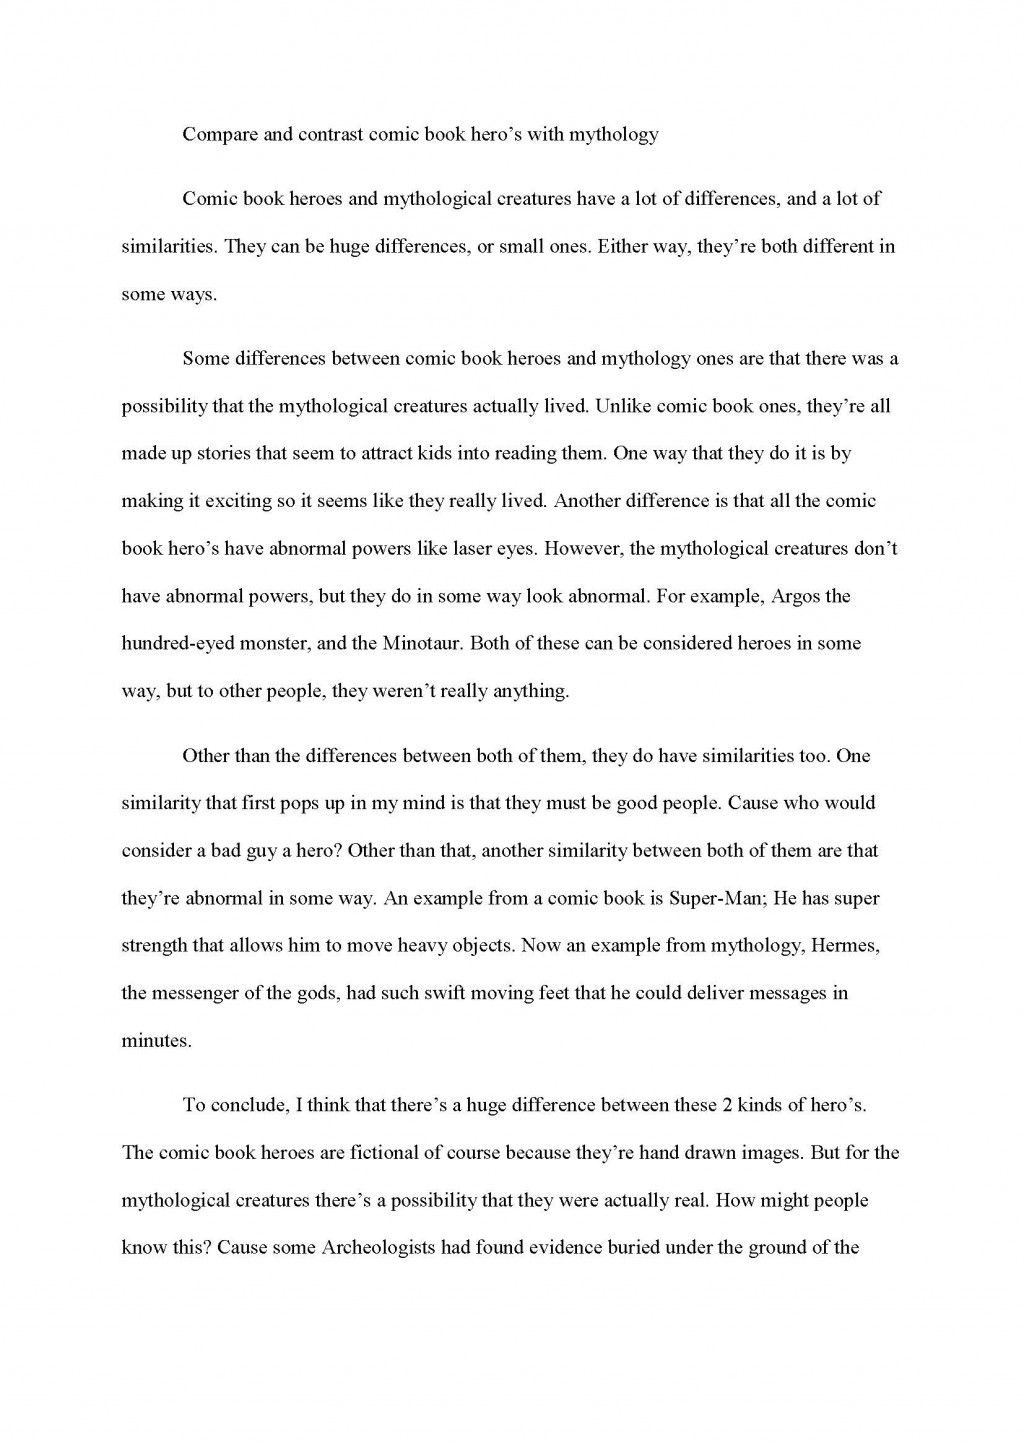 014 Essay Example Compared Contrast Sample How To Start Of Breathtaking An Application About Yourself Write Argumentative Step By Pdf Conclusion Paragraph Large